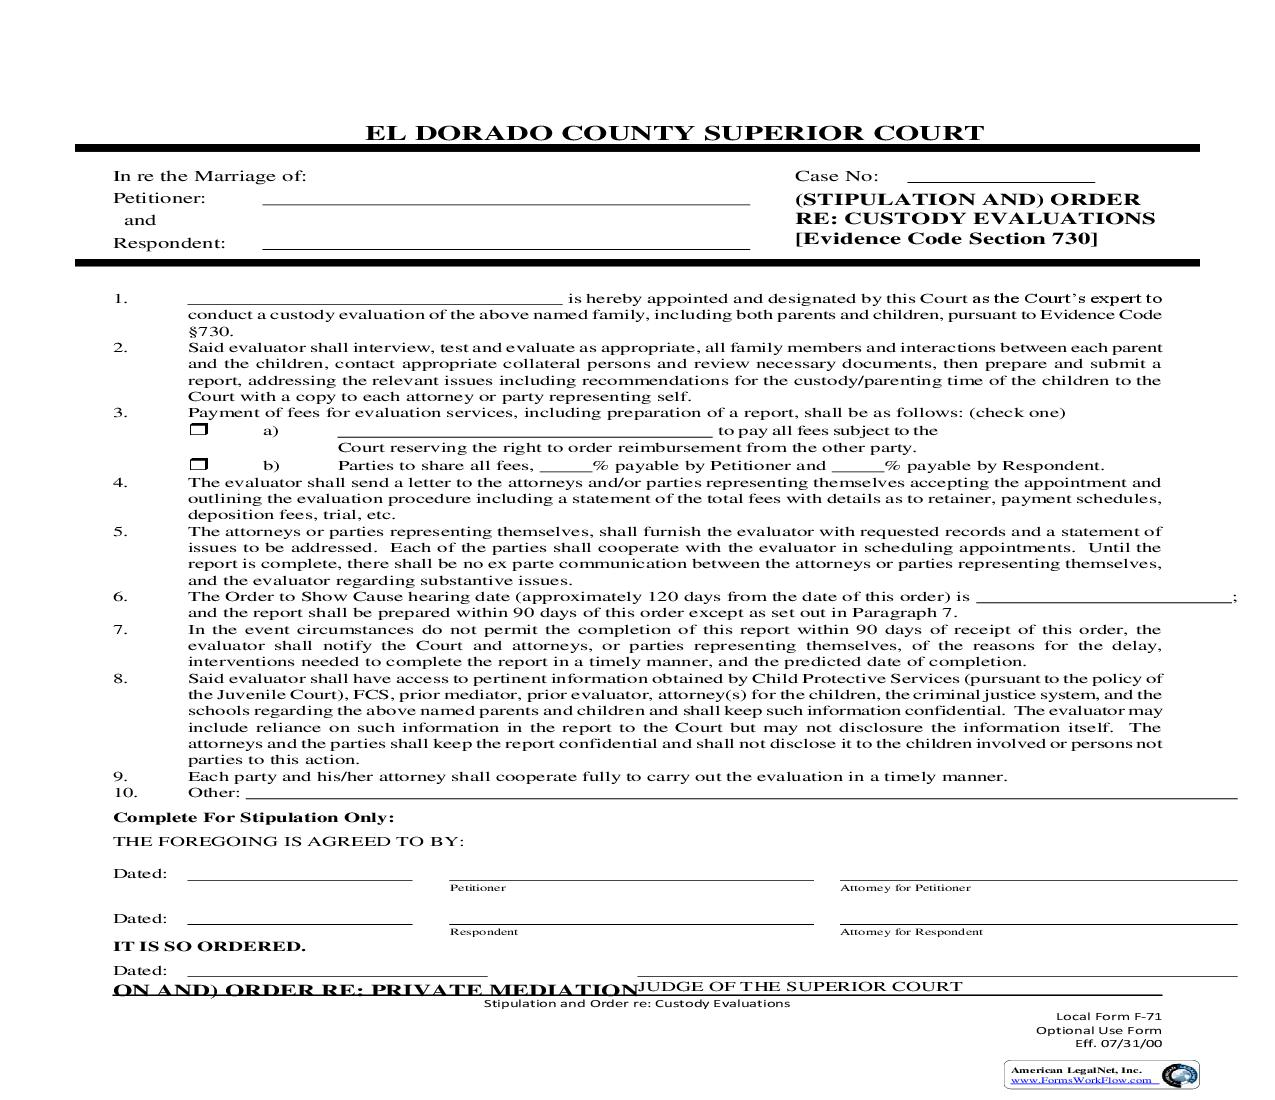 Stipulation And Order Re Custody Evaluation {F-71} | Pdf Fpdf Doc Docx | California